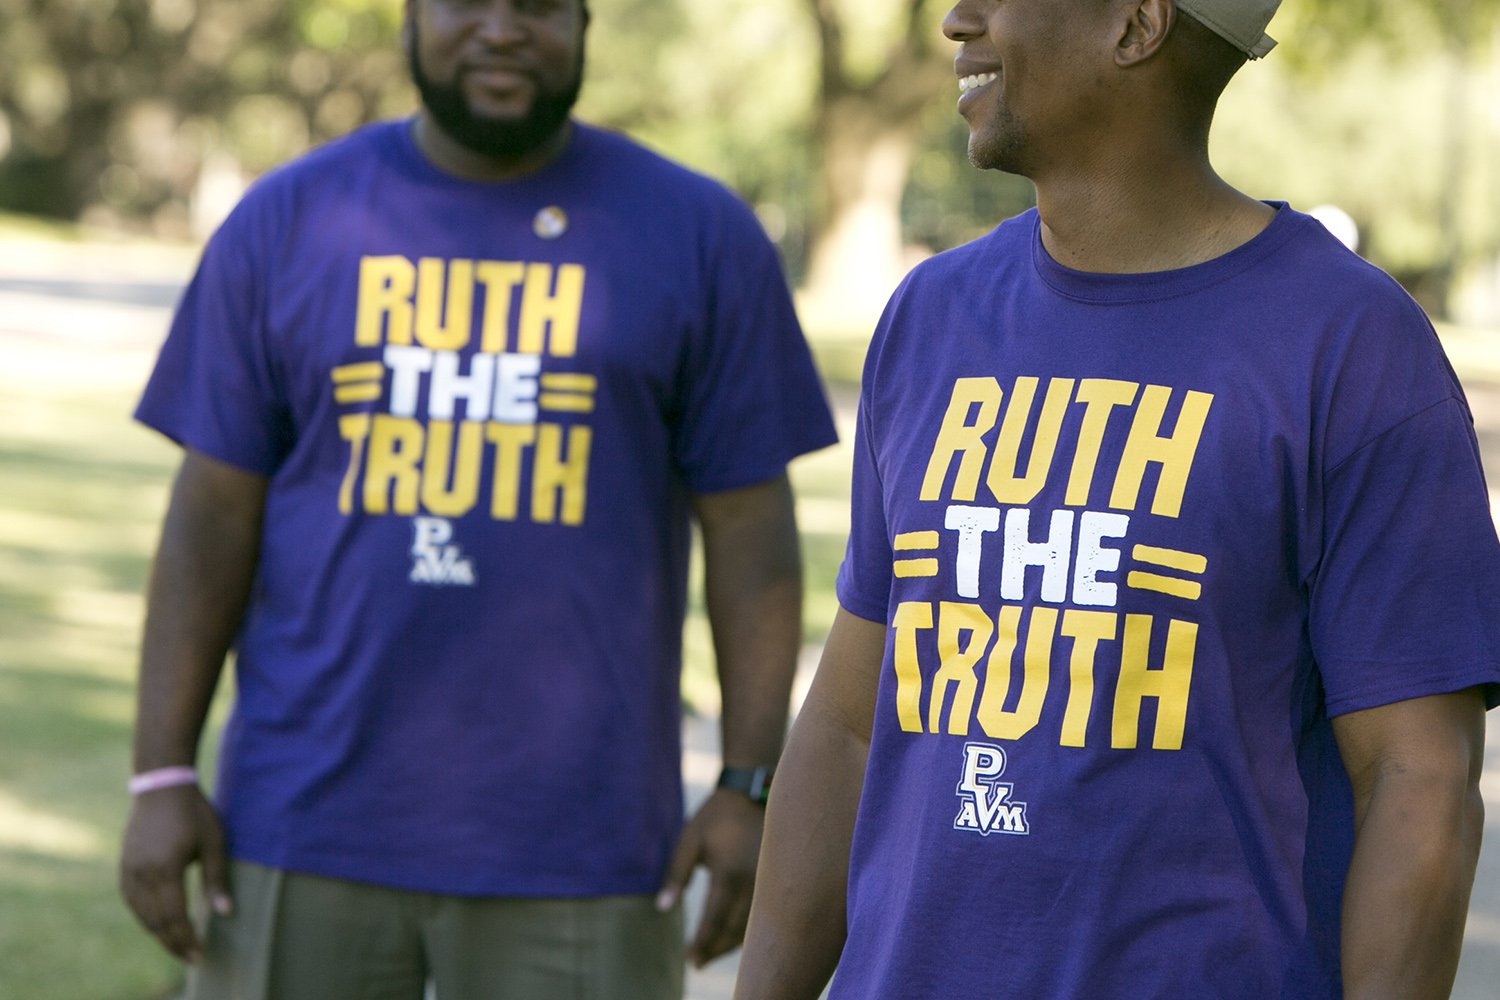 Students on the Prairie View A&M University campus wear shirts in support of the interim President Ruth Simmons, who is the sole finalist for the position of permanent president.